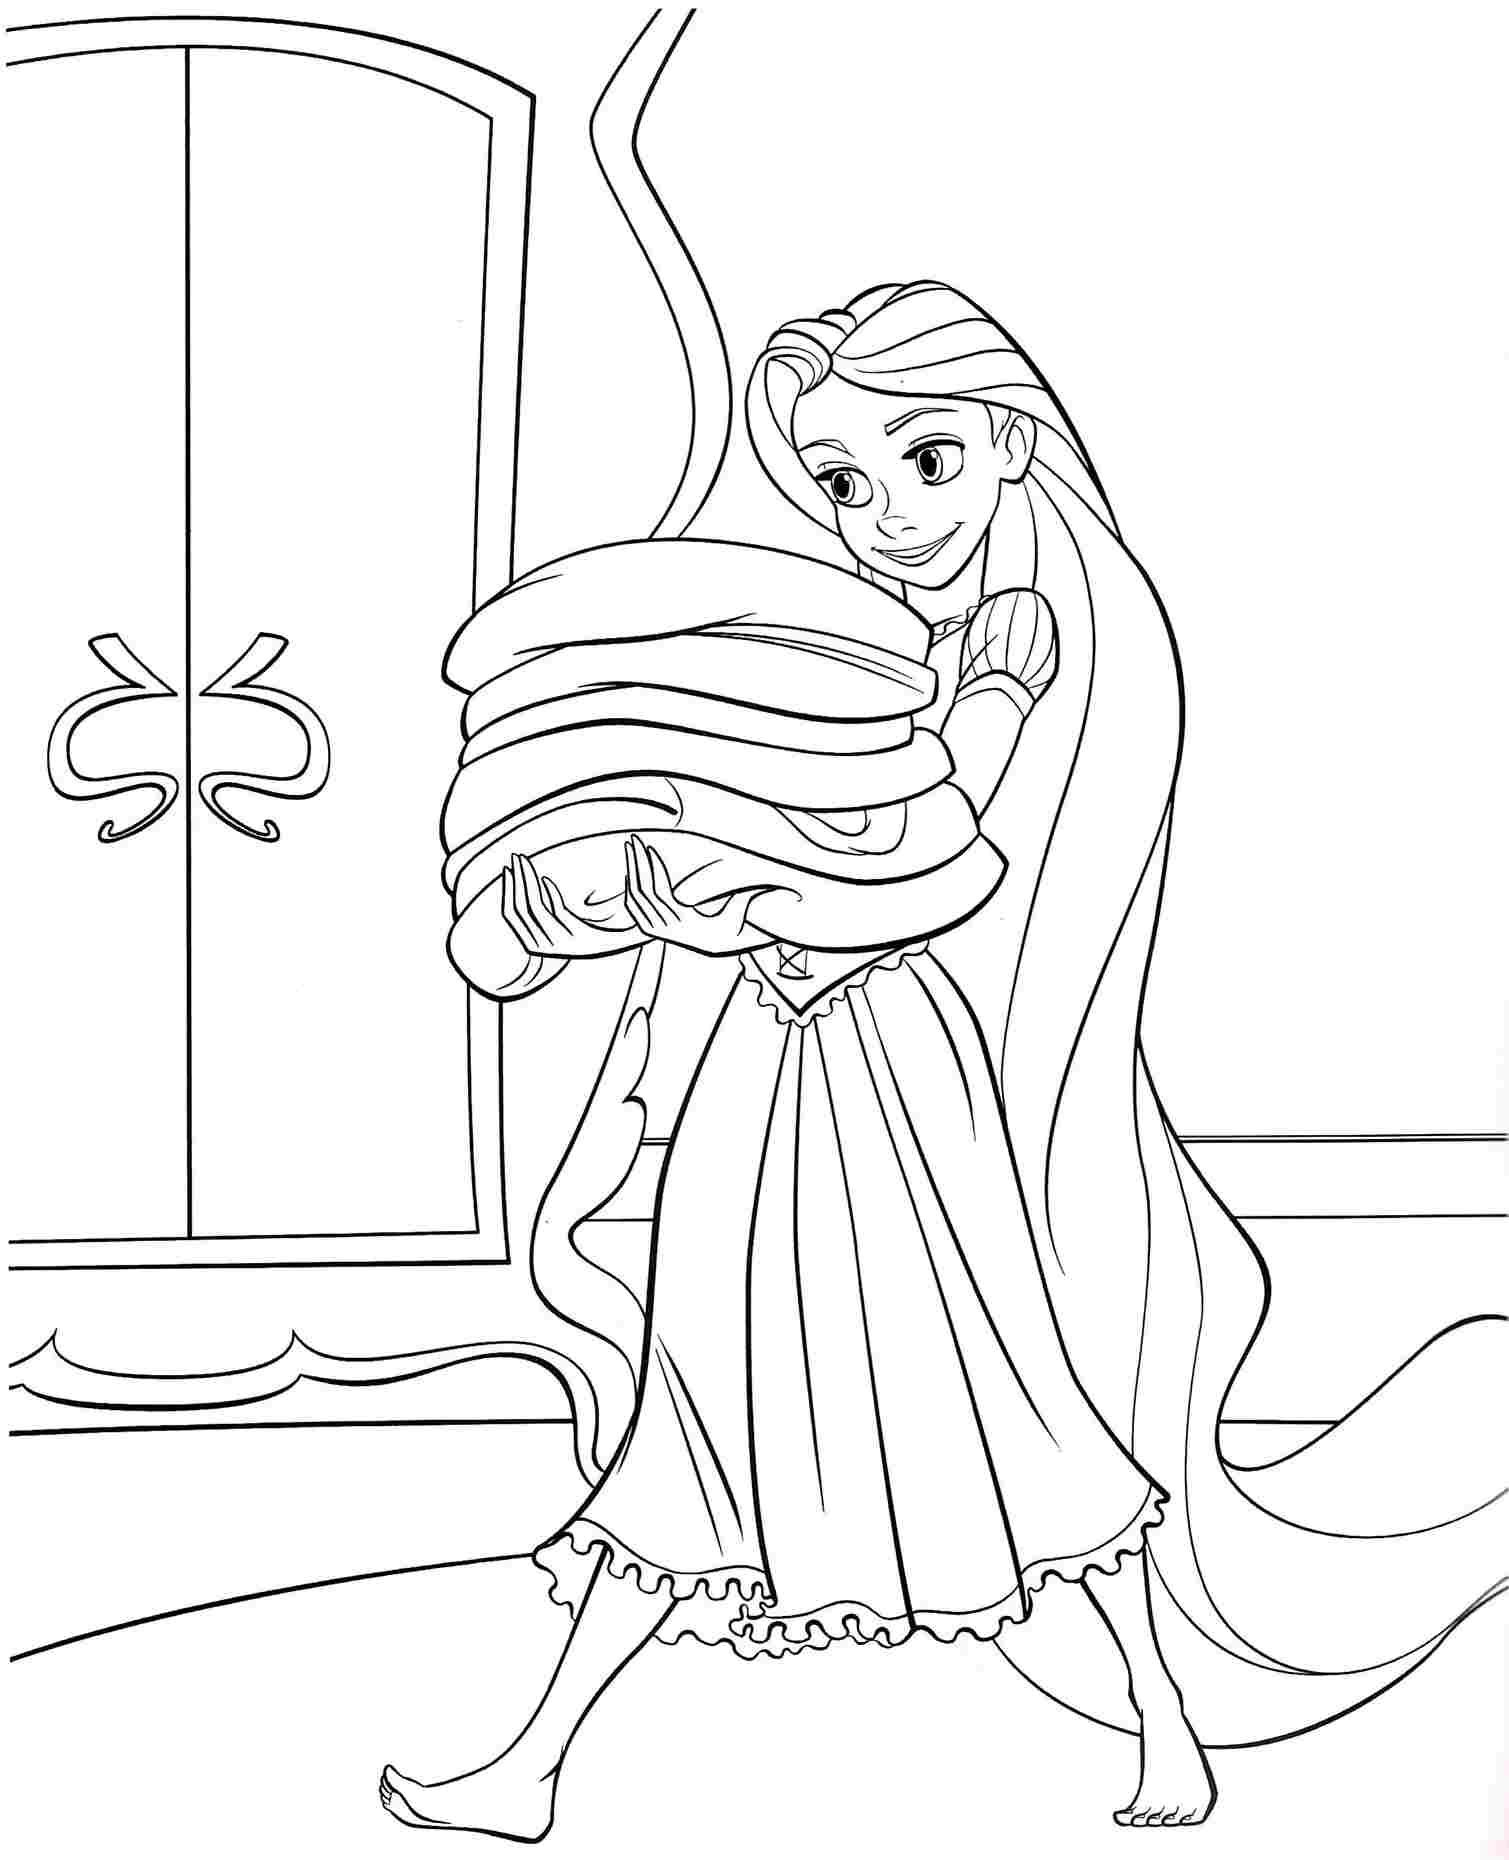 Free coloring pages disney princesses - Coloring Pages Disney Princess Tangled Rapunzel Free For Kids Boys